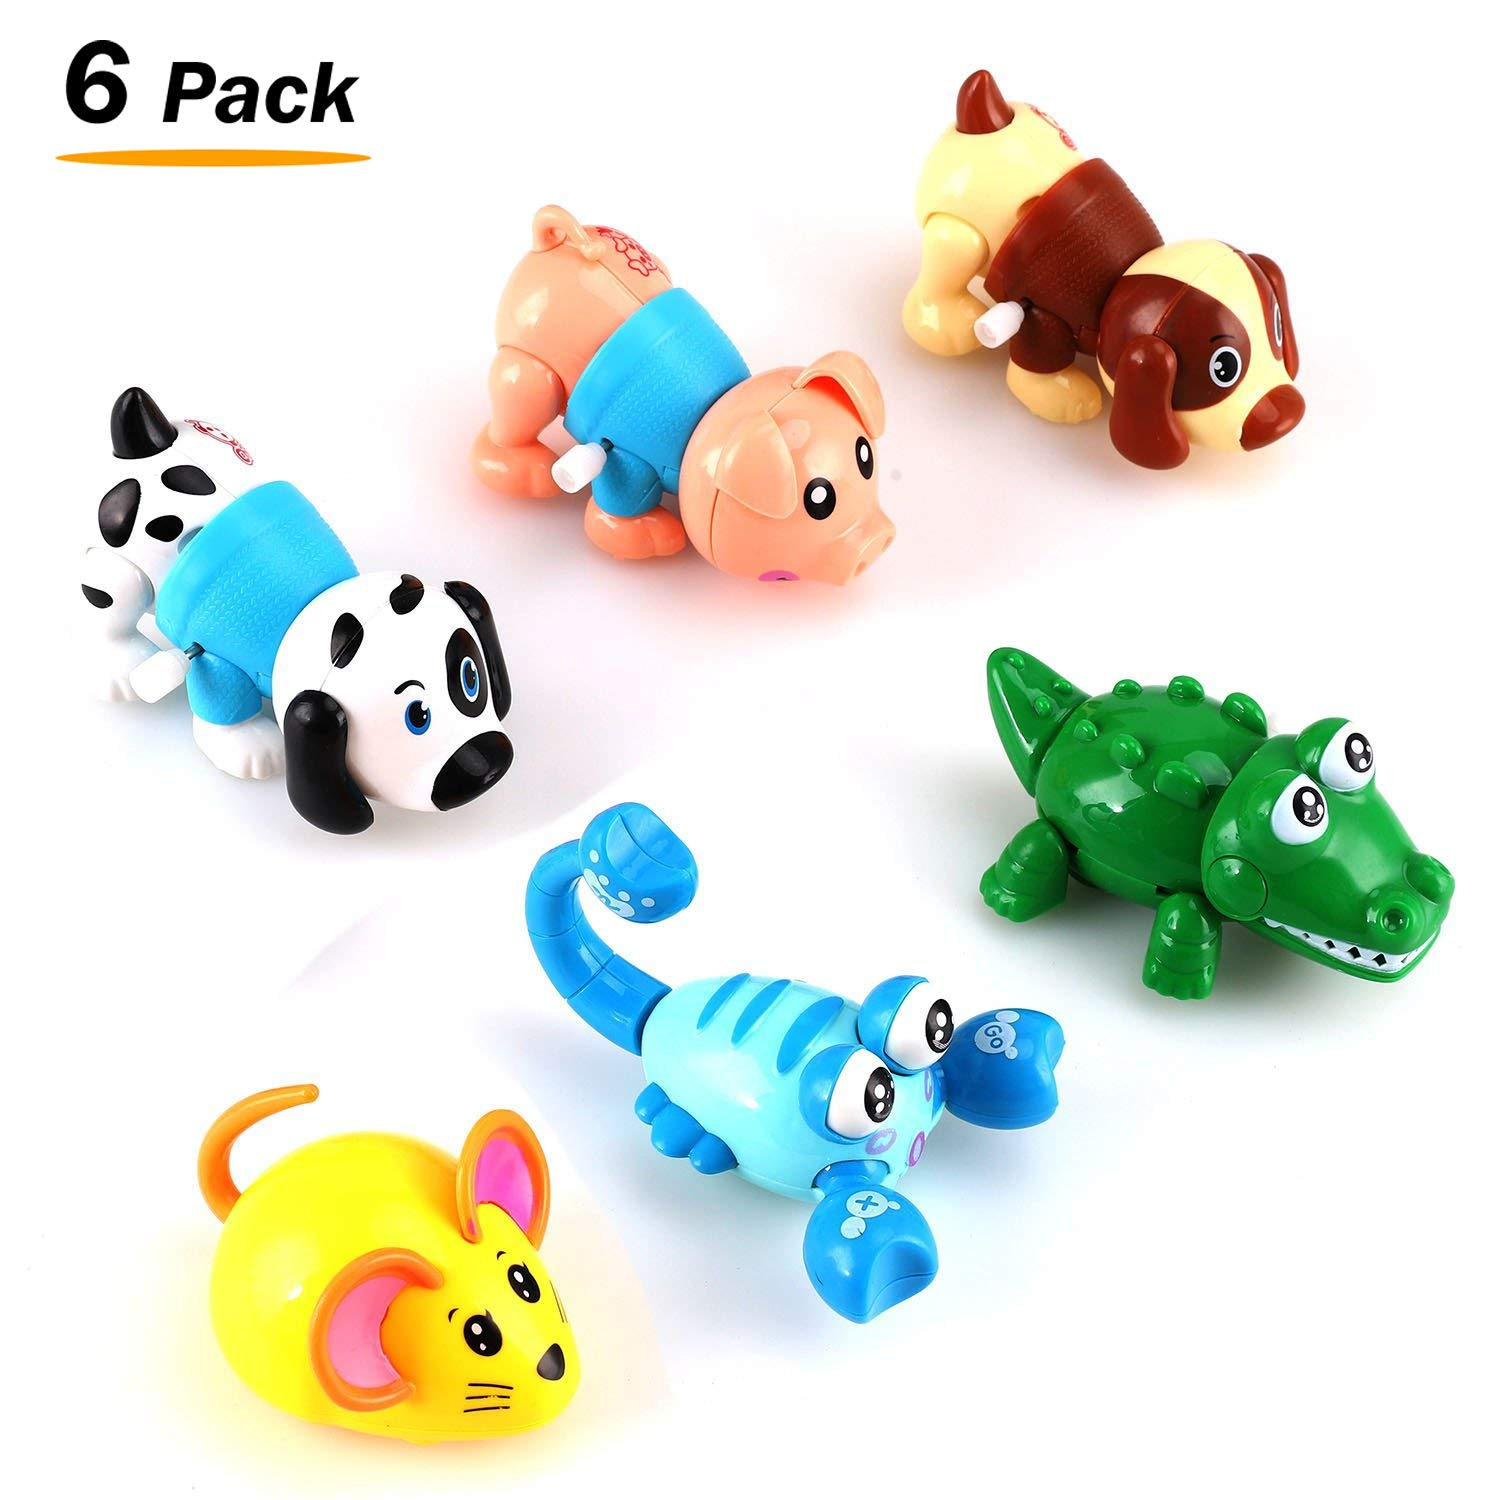 Liberty Imports Set of 6 Wind Up Animals for Kids (Includes Pig, Mouse, Dog, Scorpion, Crocodile, Puppy)